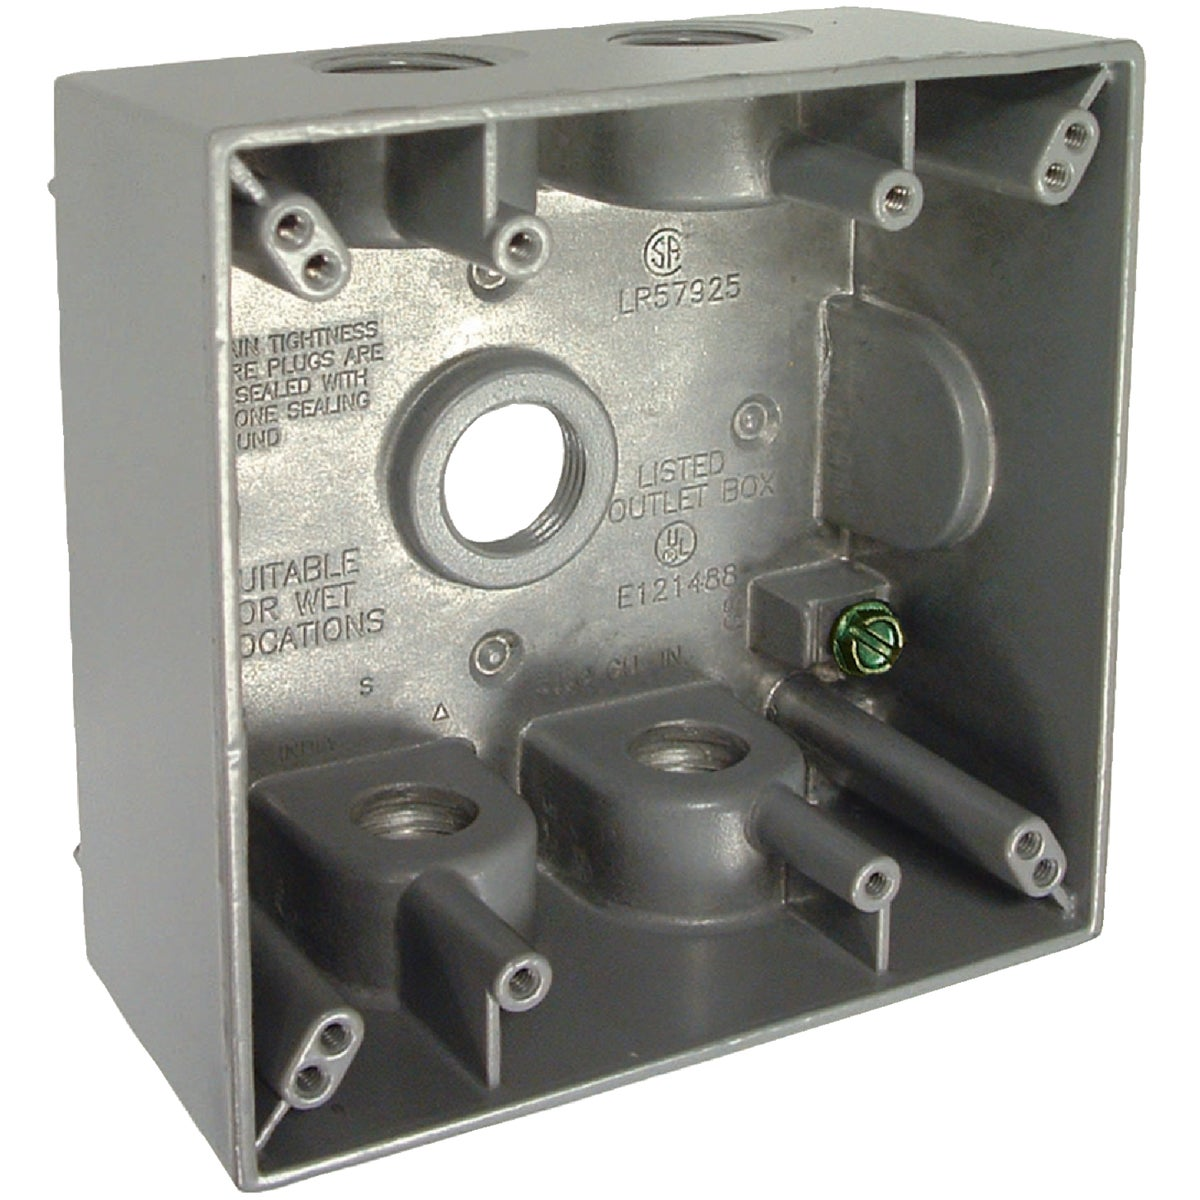 Bell 2-Gang Weatherproof Outdoor Outlet Box